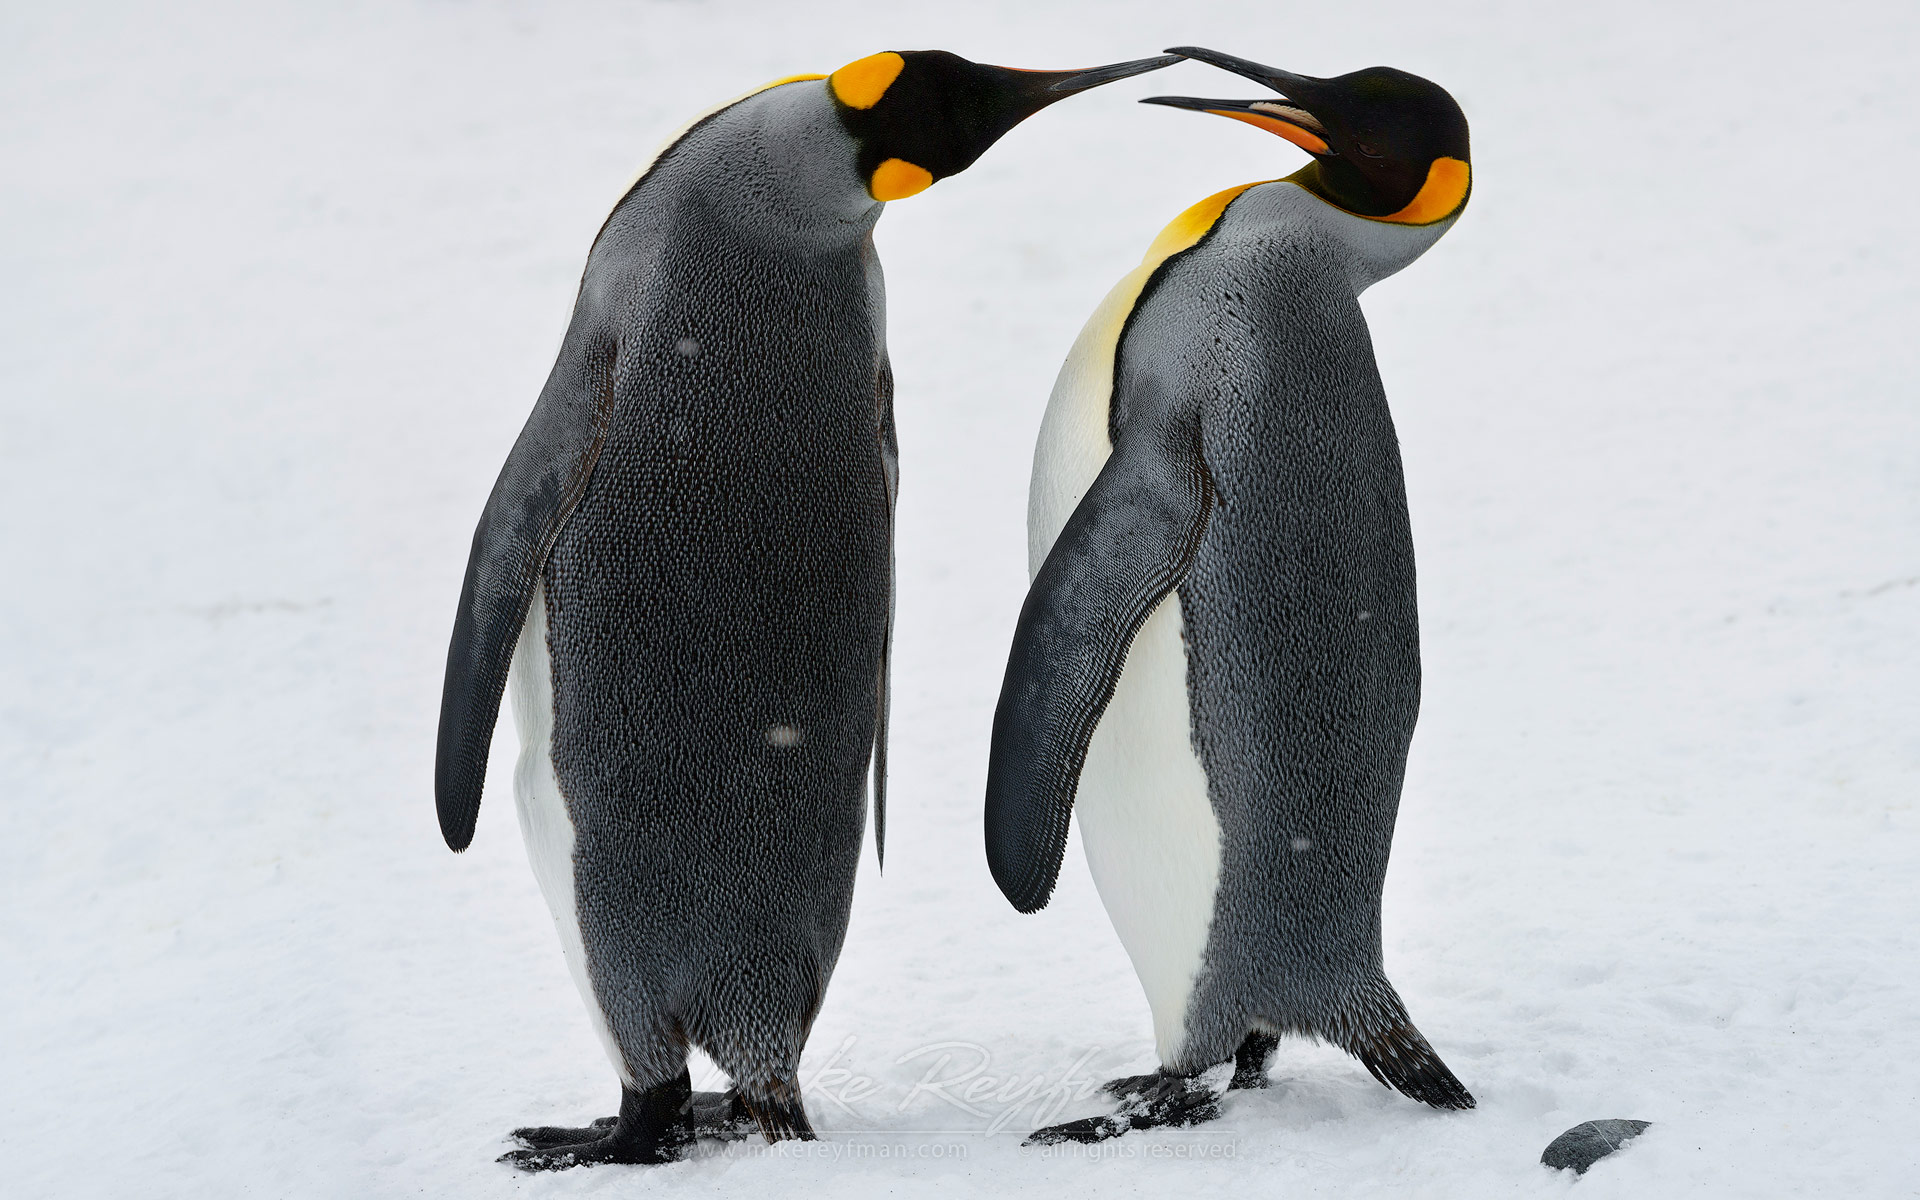 King Penguins (Aptenodytes patagonicus), Salisbury Plain, South Georgia, Sub-Antarctic - King-Penguins-South-Georgia-Sub-Antarctic - Mike Reyfman Photography